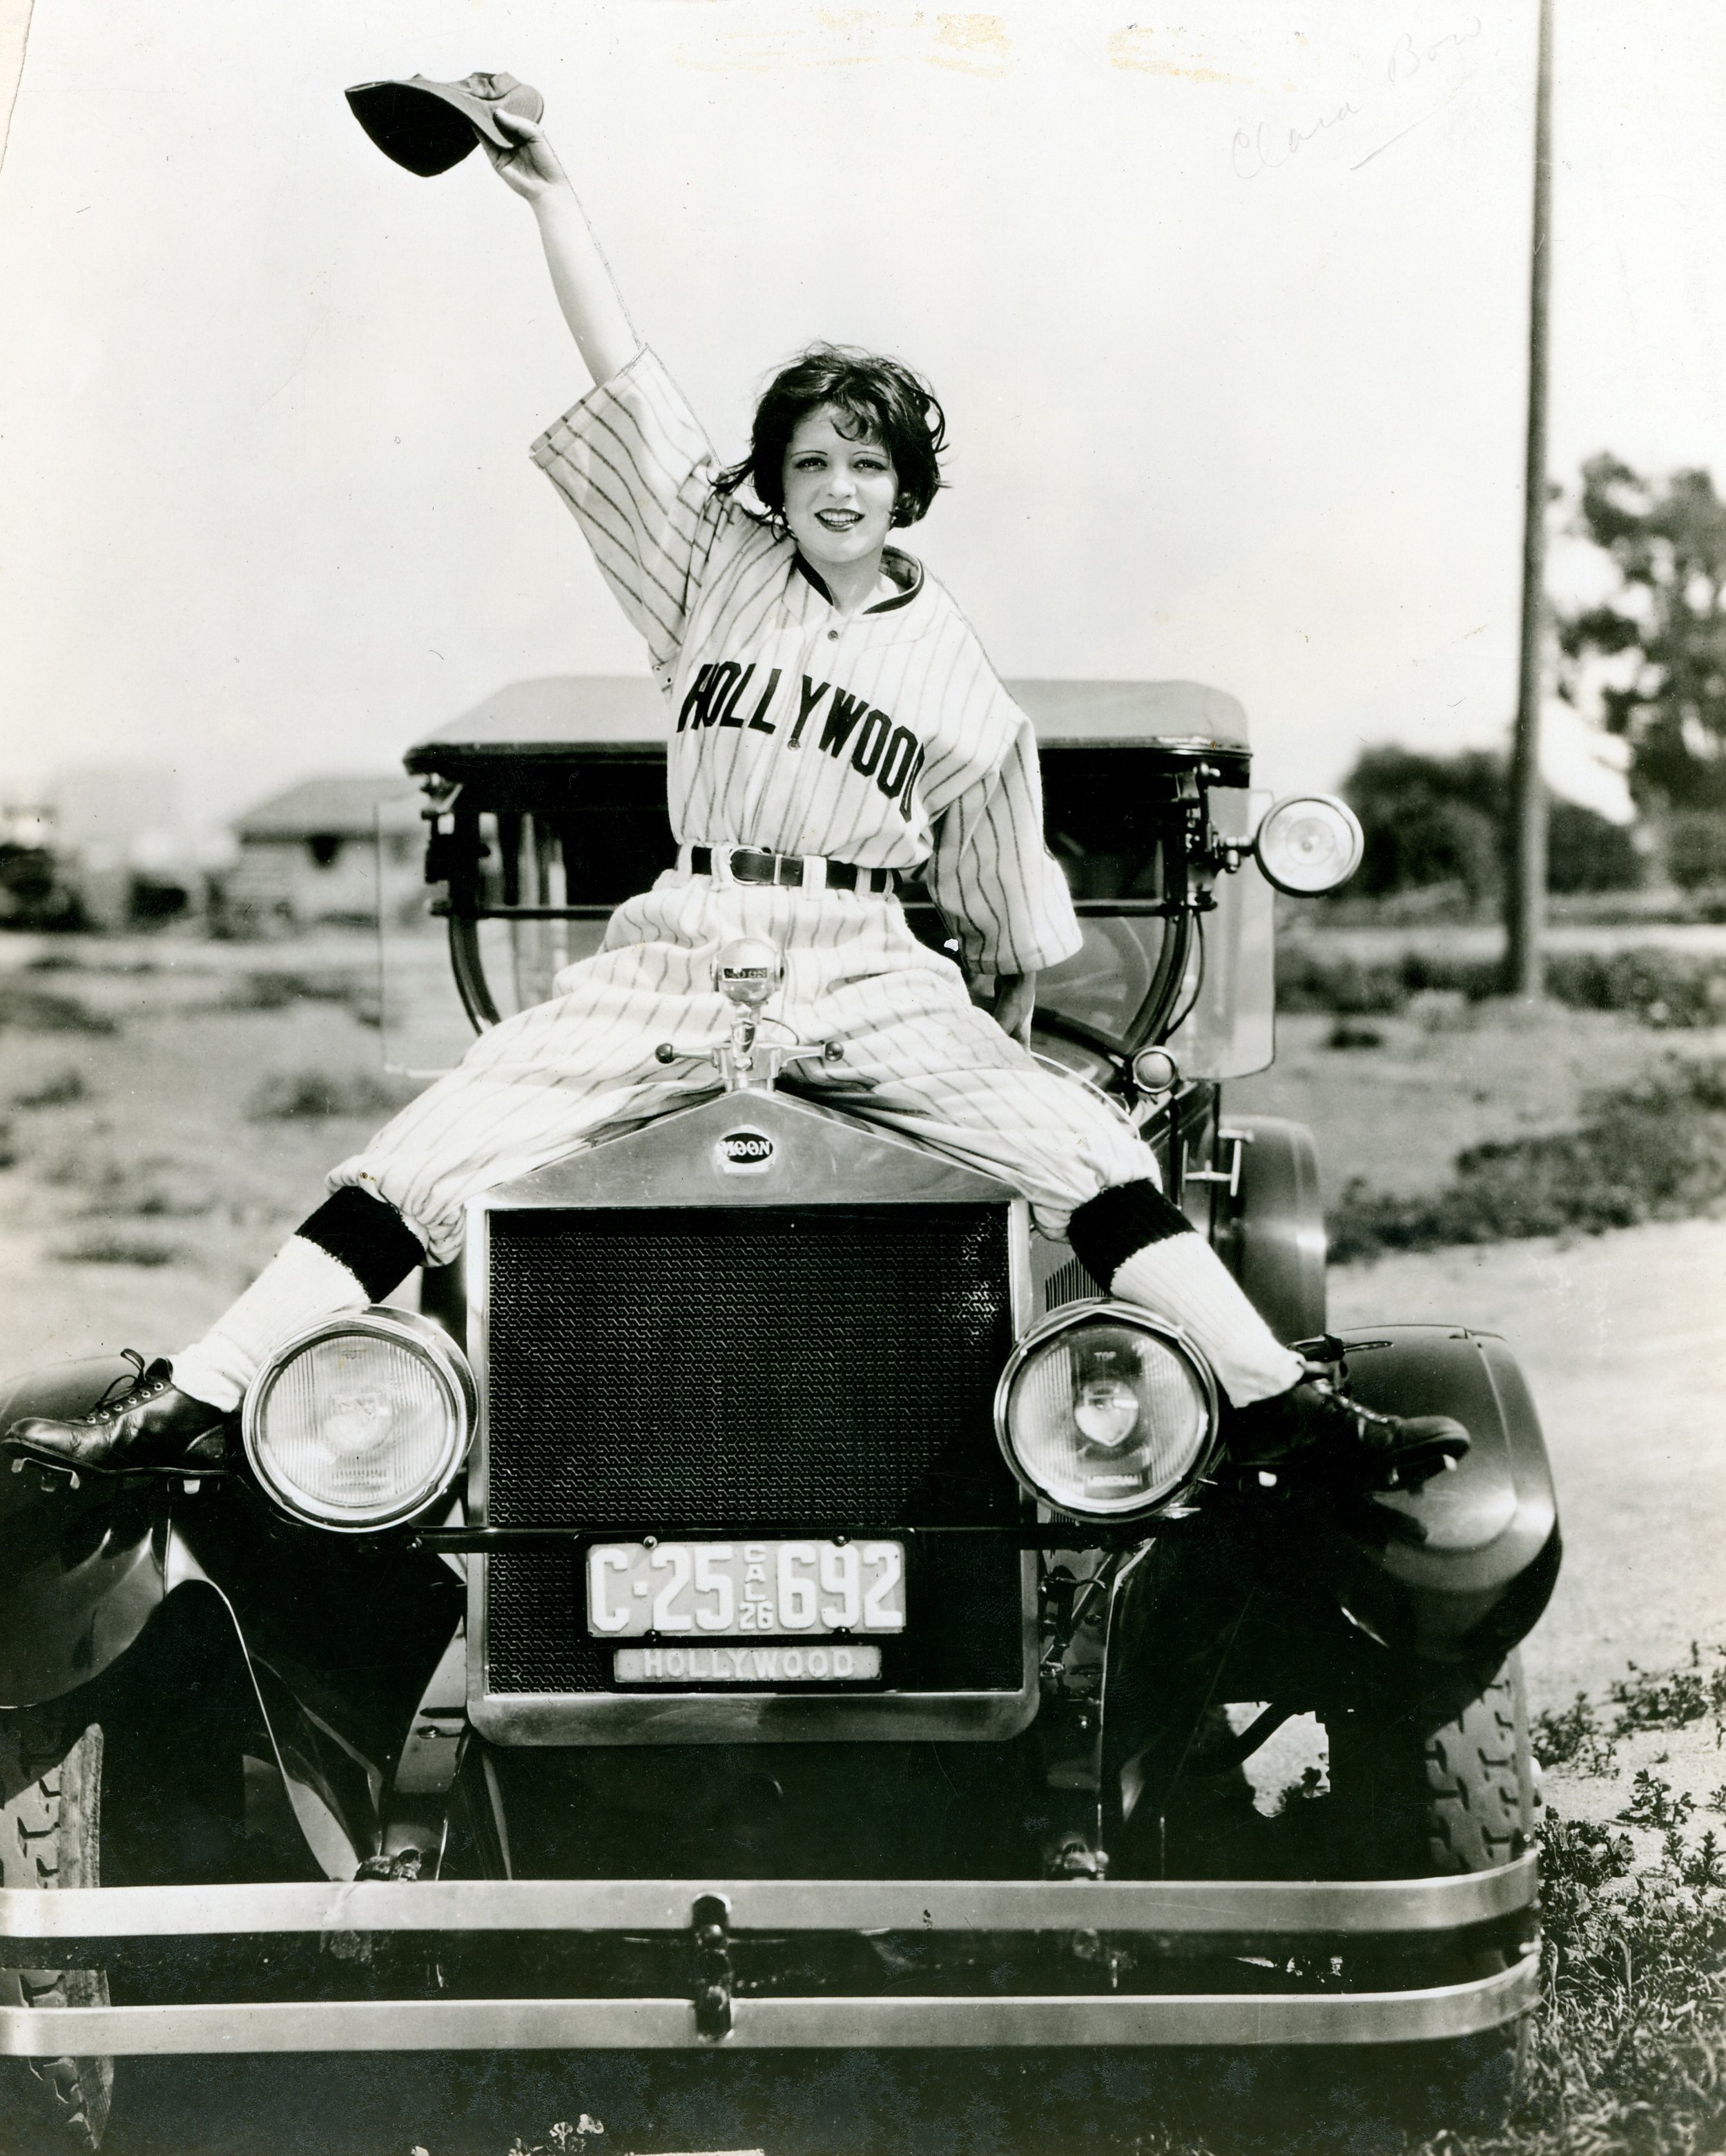 Clara Bow donning a Hollywood Stars jersey. Photo via Missouri Historical Society (1926).